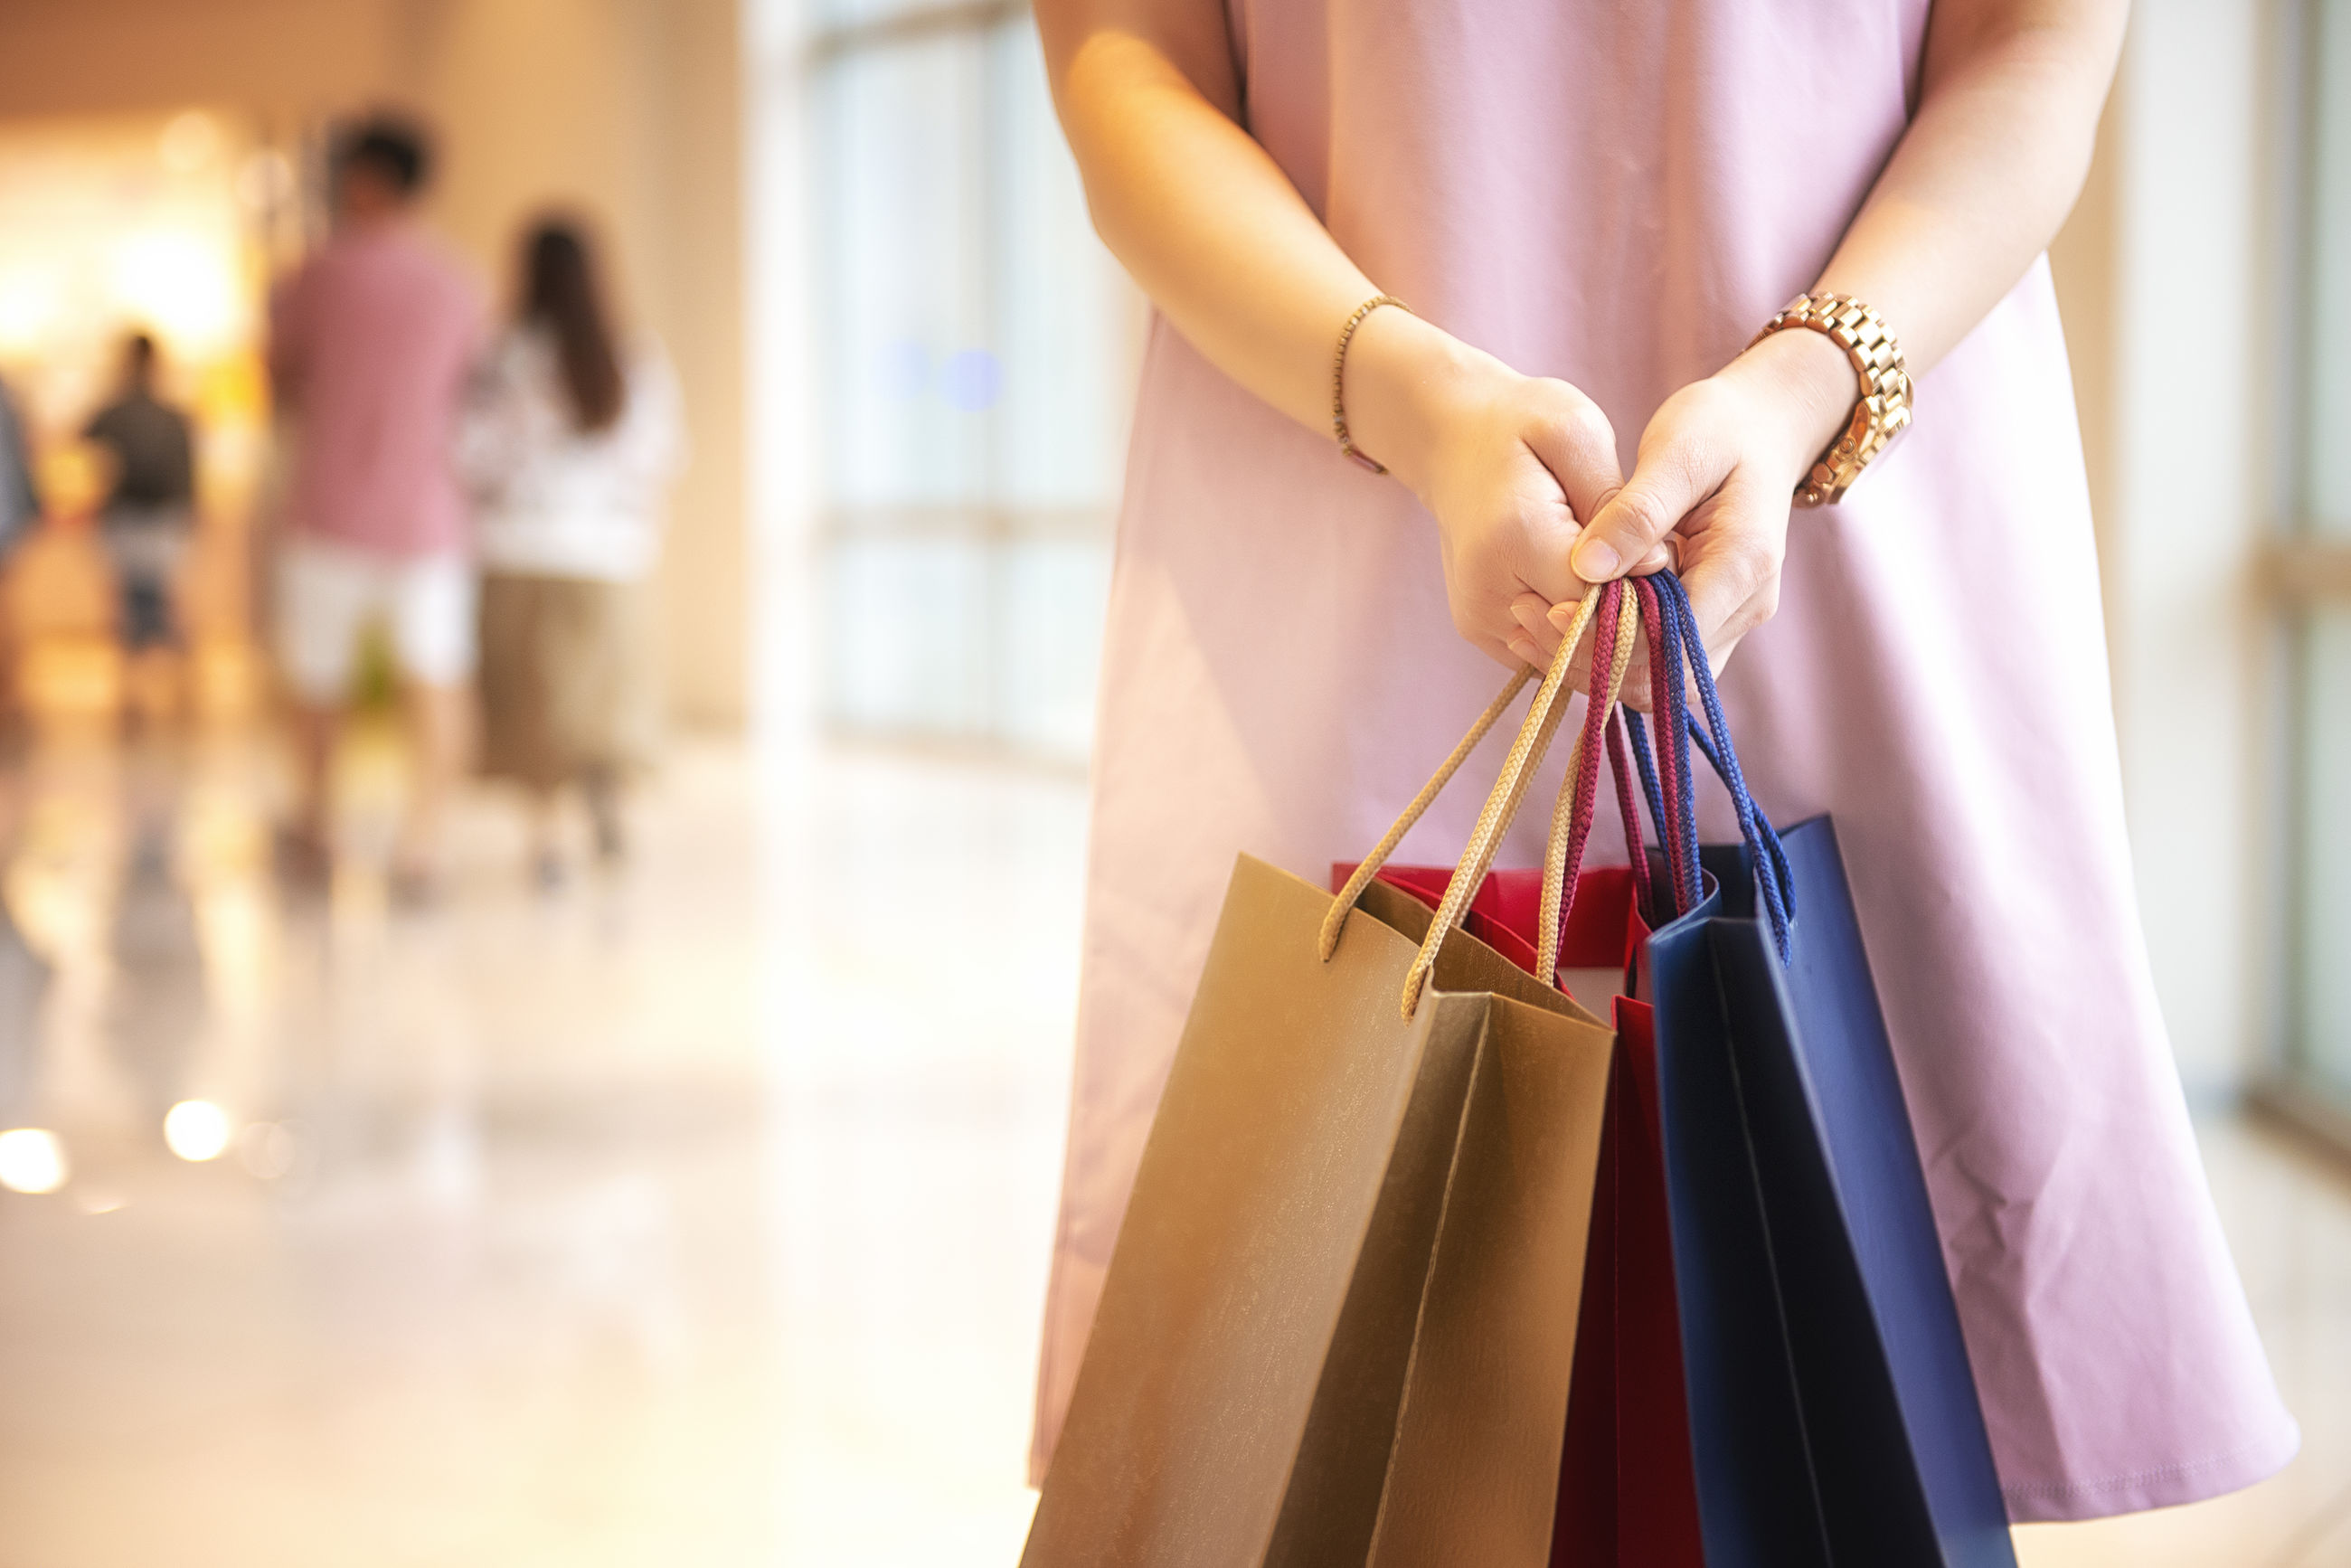 Midsection of woman holding shopping bags in mall